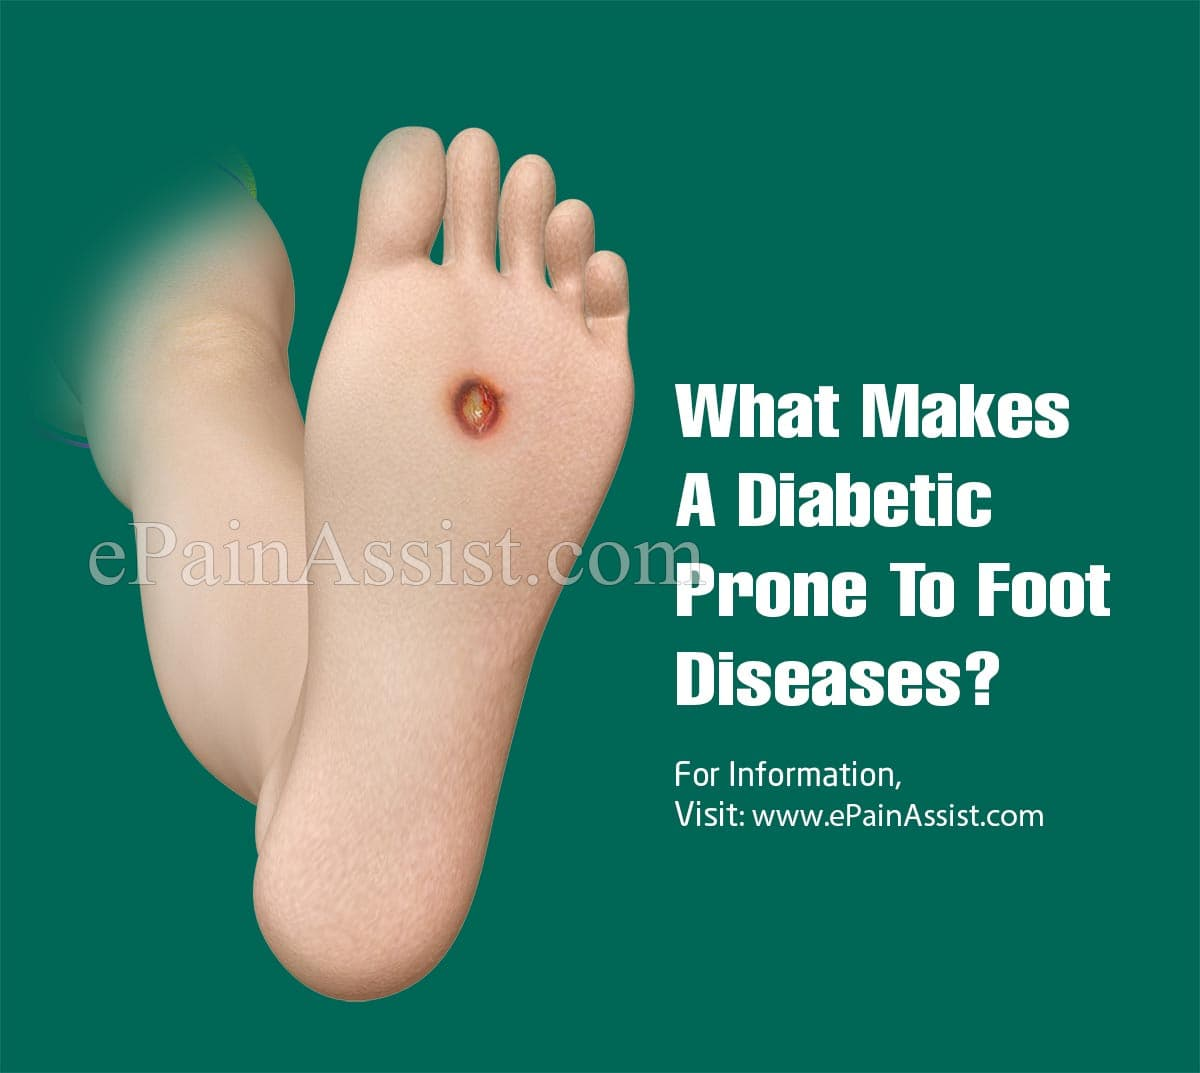 What Makes A Diabetic Prone To Foot Diseases?